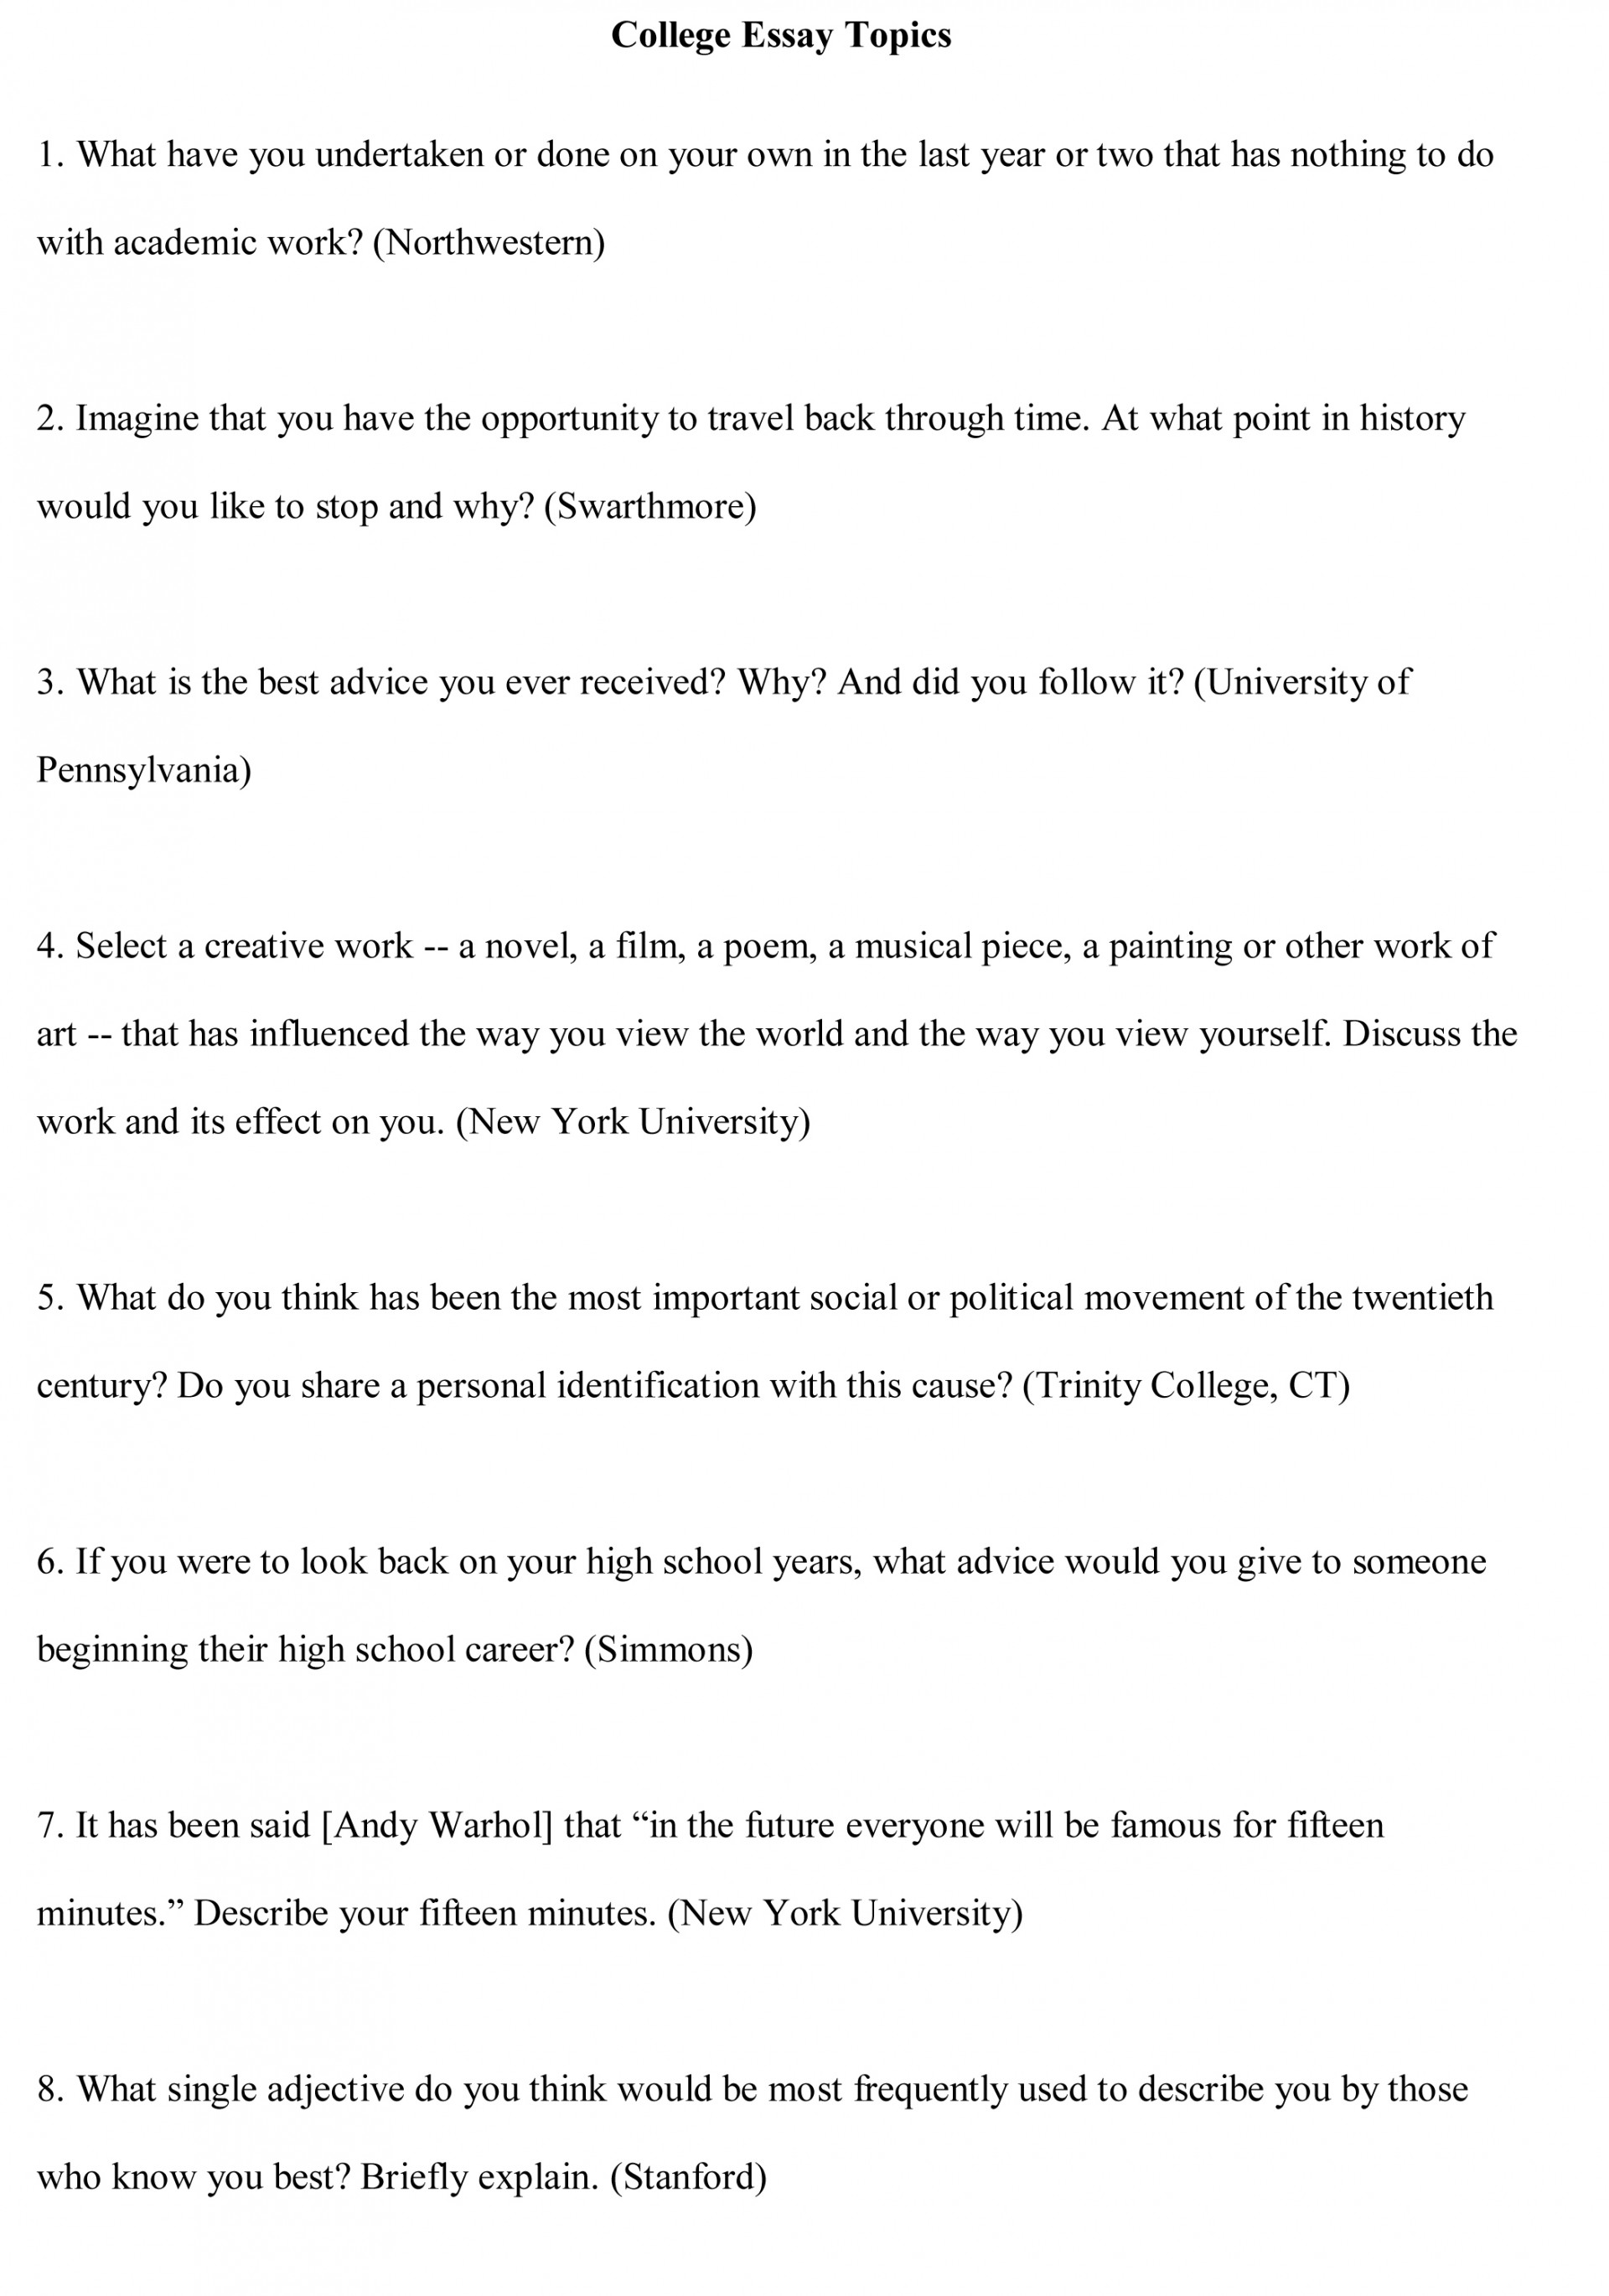 012 College Essay Topics Free Sample1 Research Paper Medical Awful Papers Best Ethics For High School Students 1920